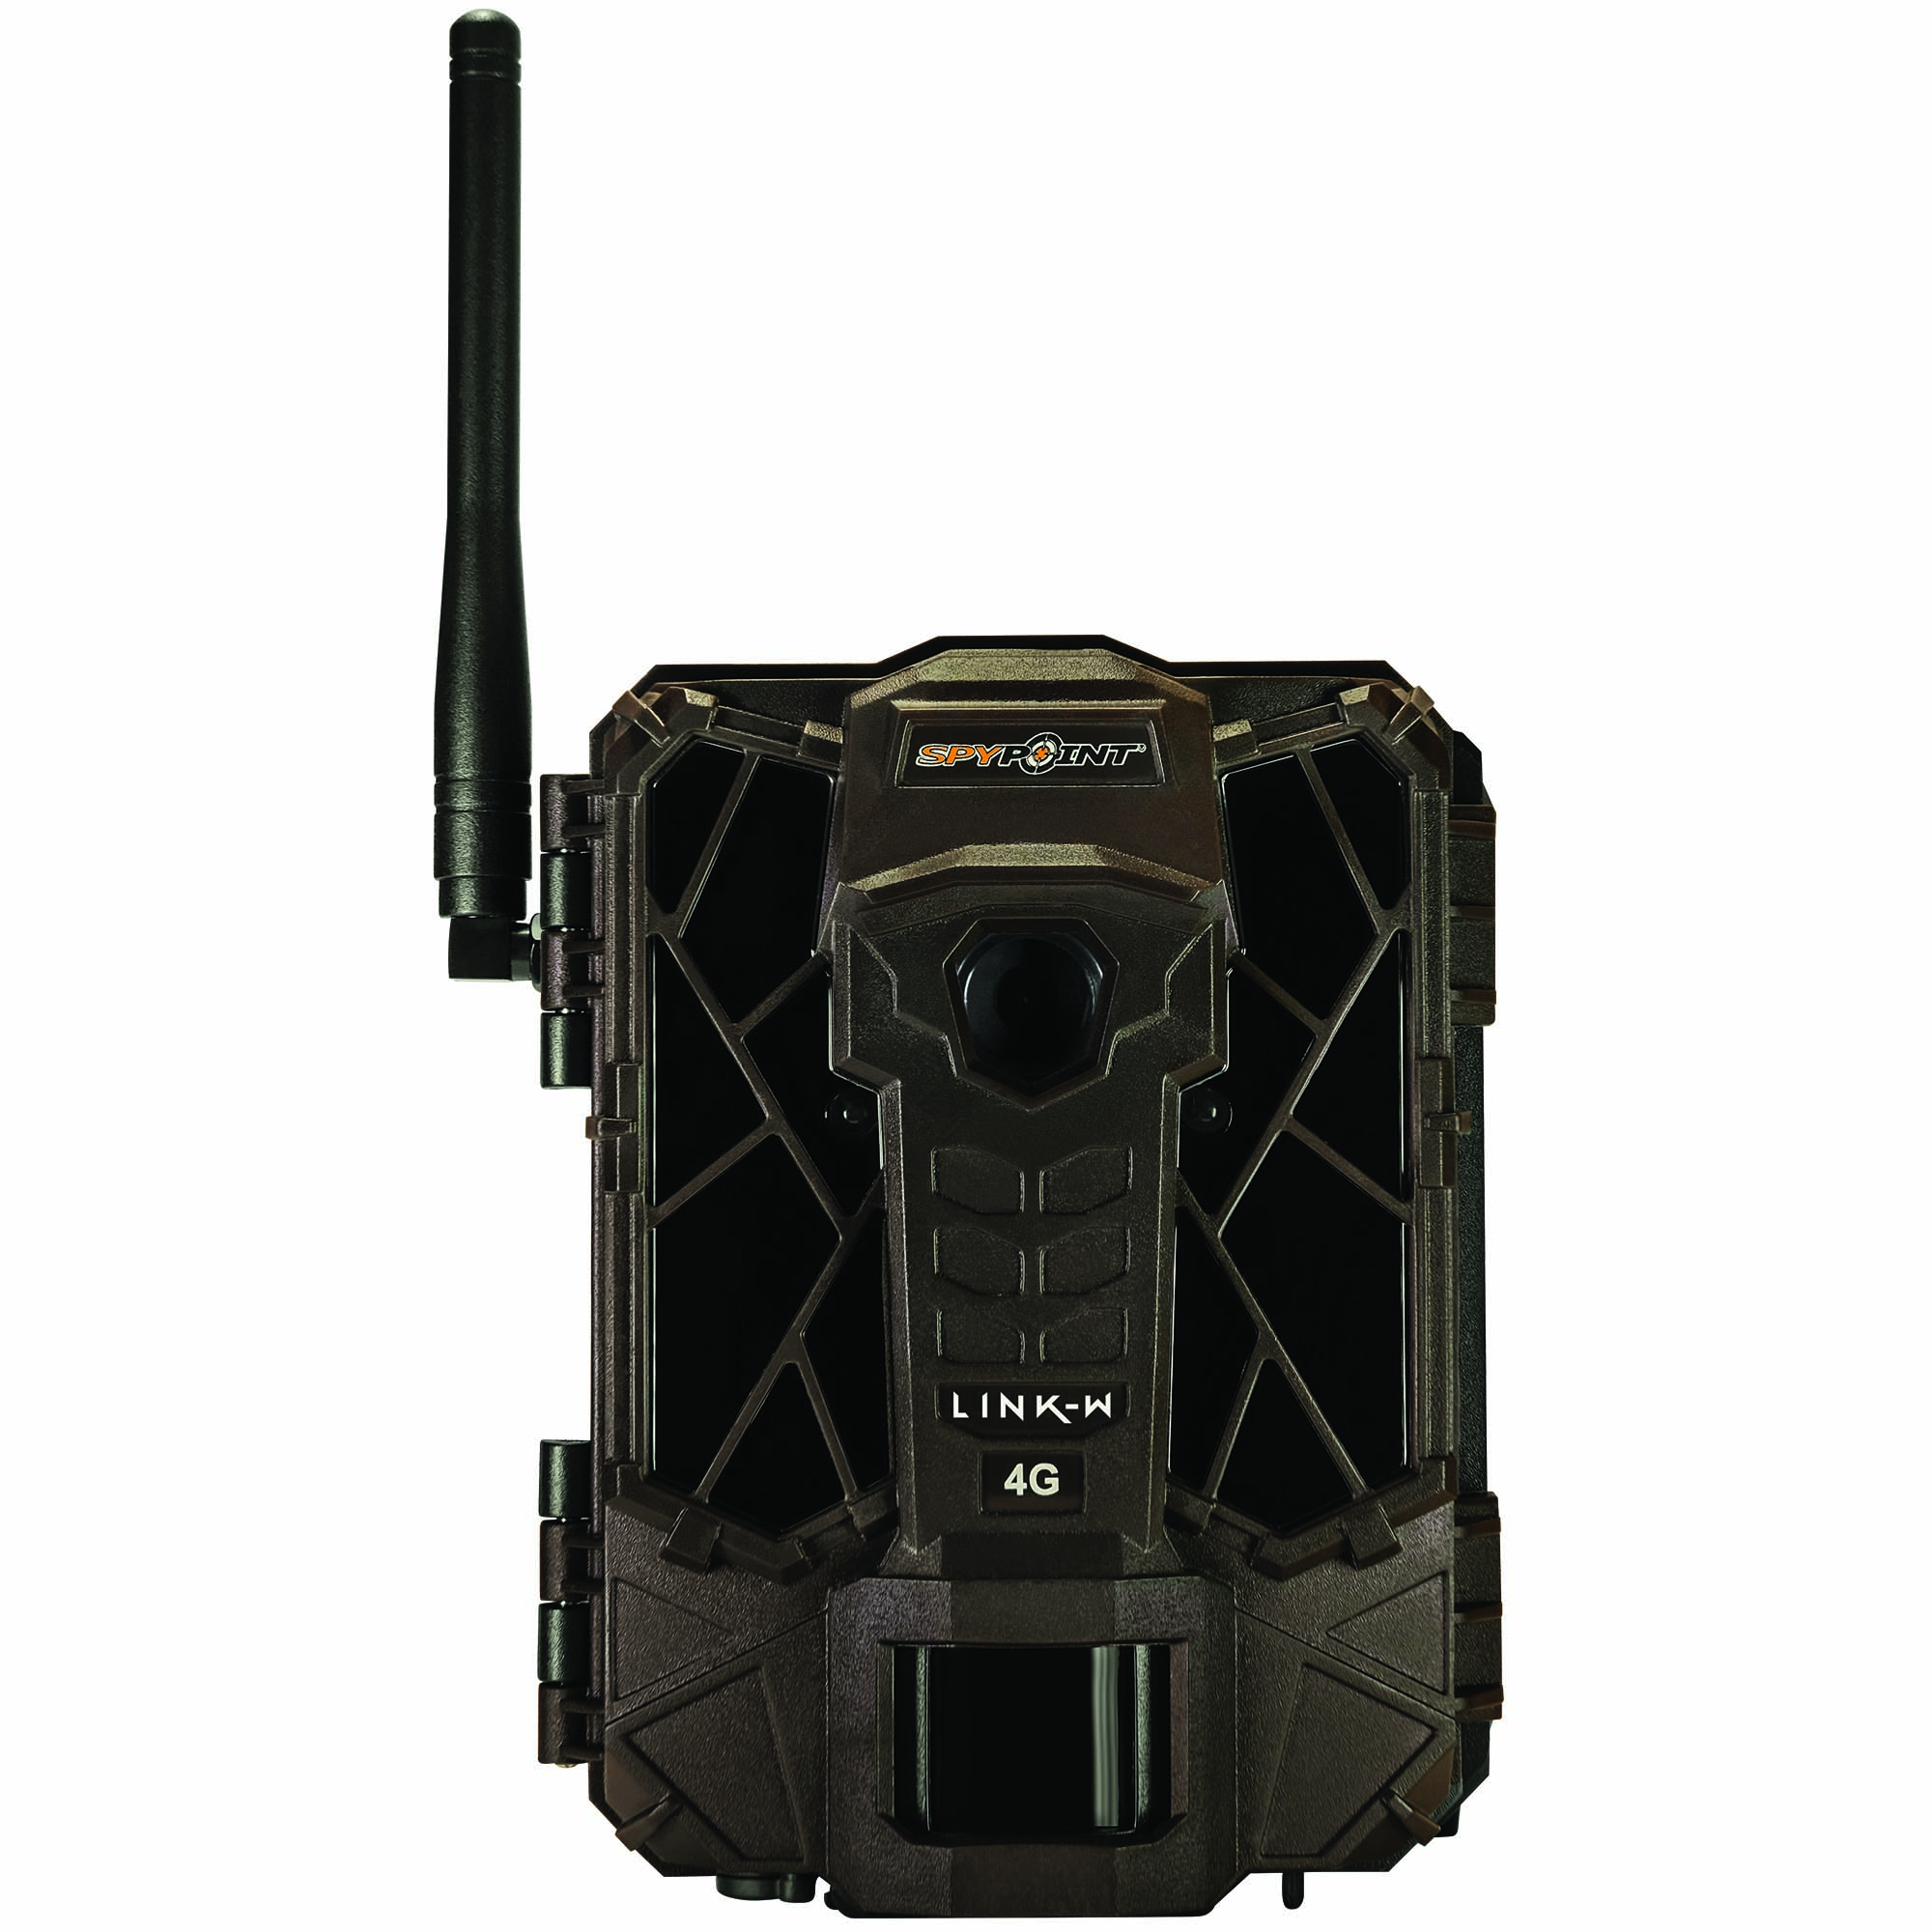 SPYPOINT LINK-W-V Cellular Trail camera